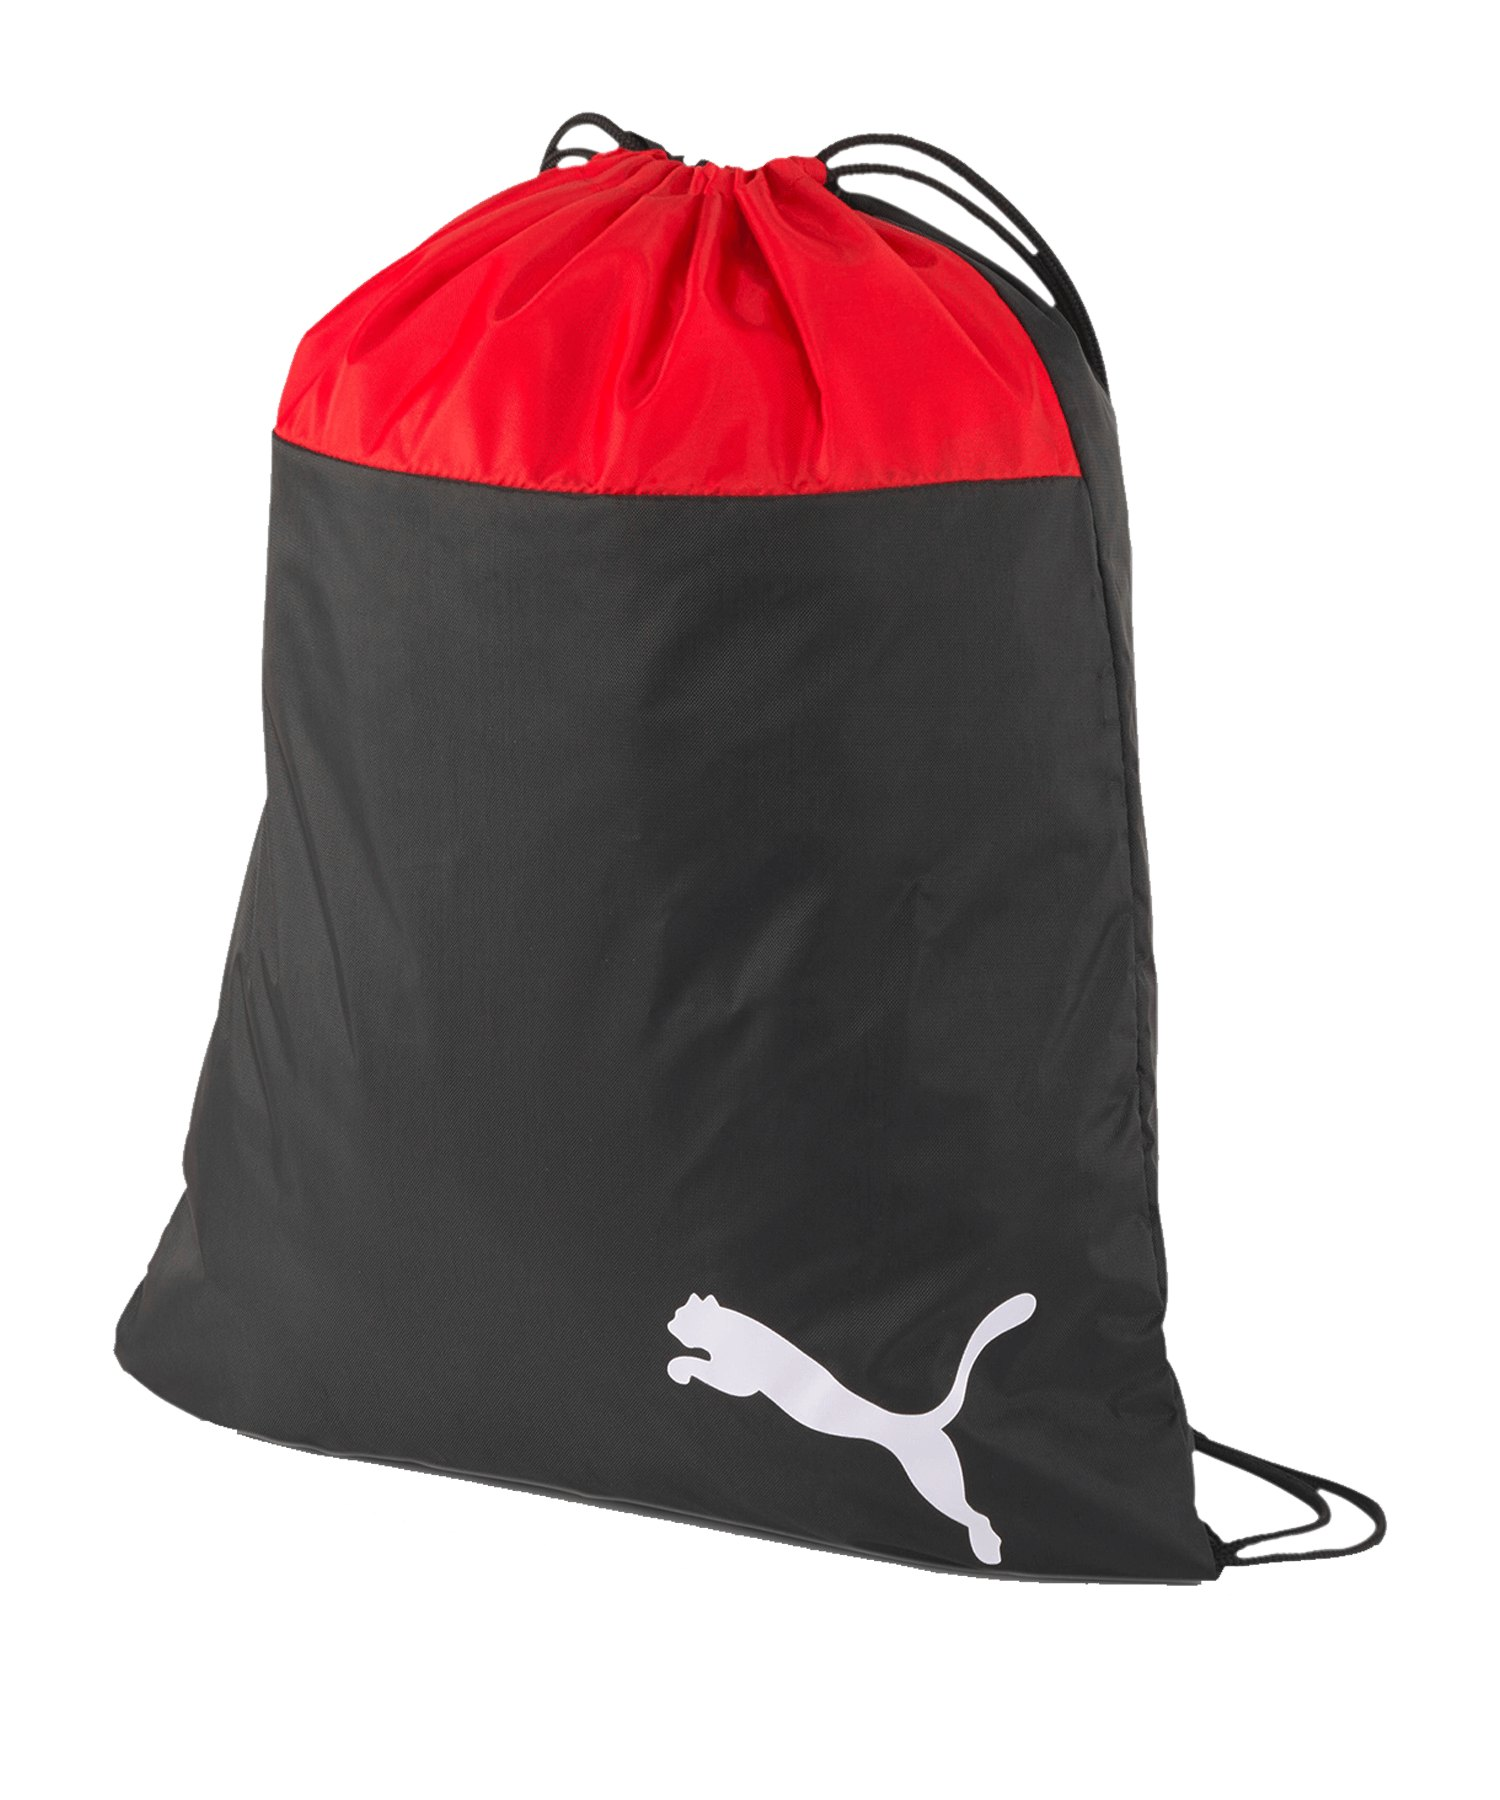 PUMA teamGOAL 23 Gymsack Schuhbeutel Rot F01 - rot